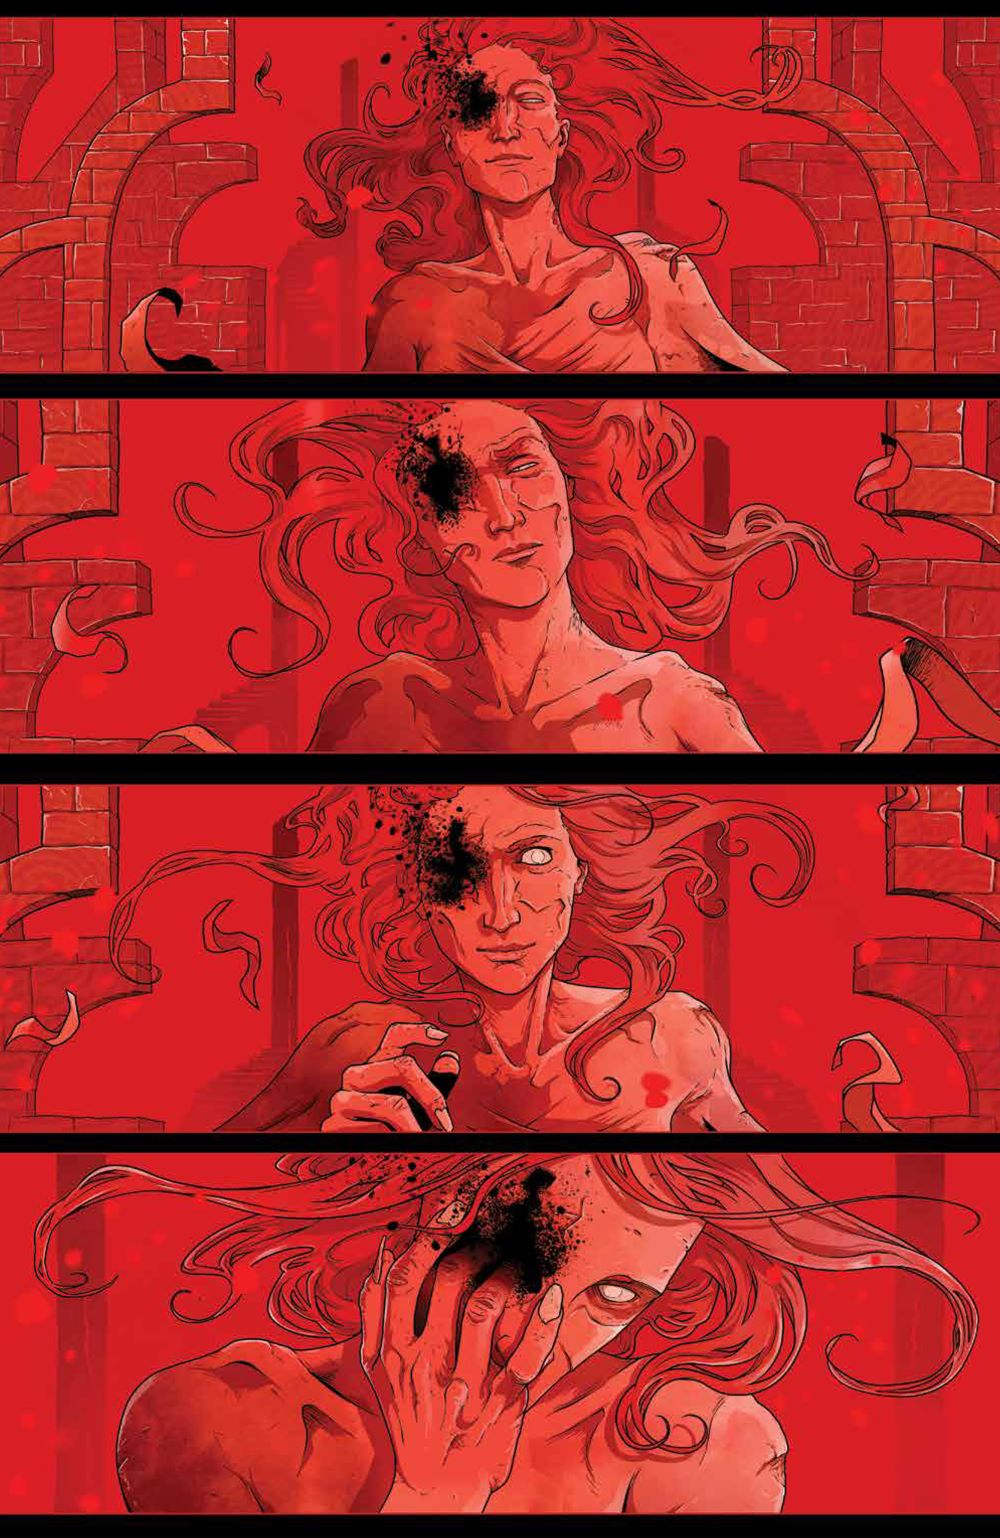 RedMother_008_PRESS_3 ComicList Previews: THE RED MOTHER #8